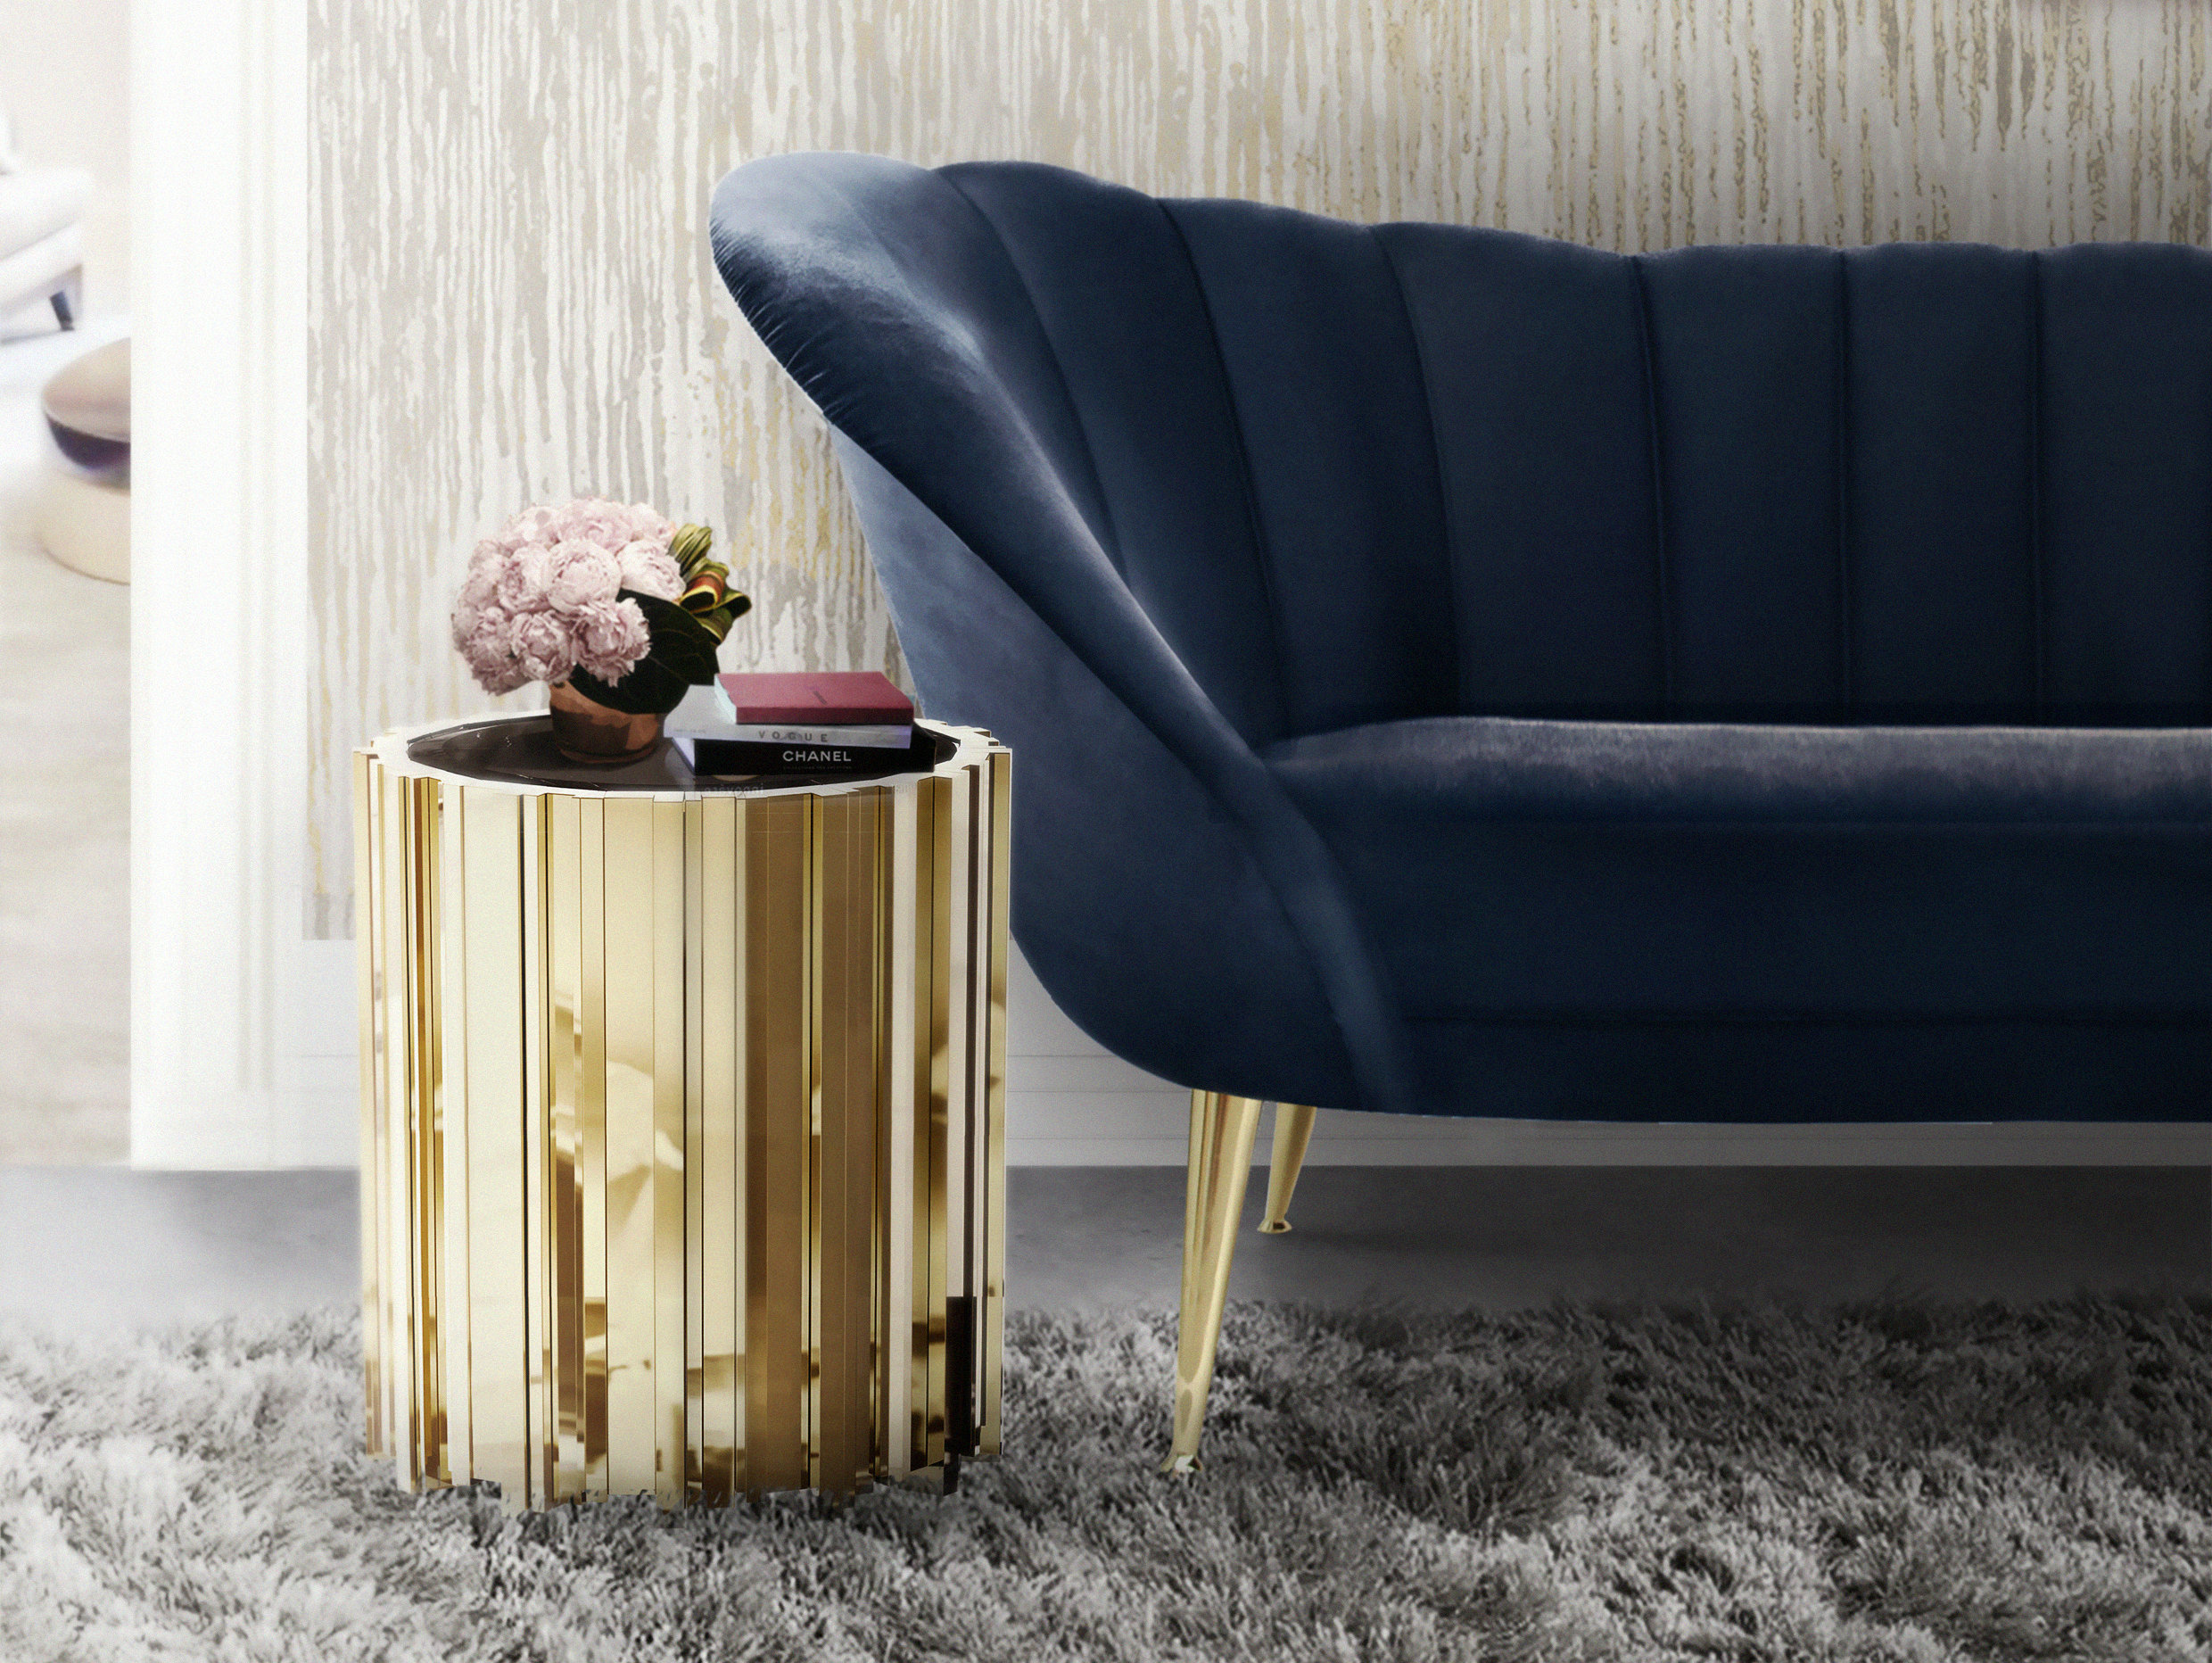 Brighten up your home with gold accents